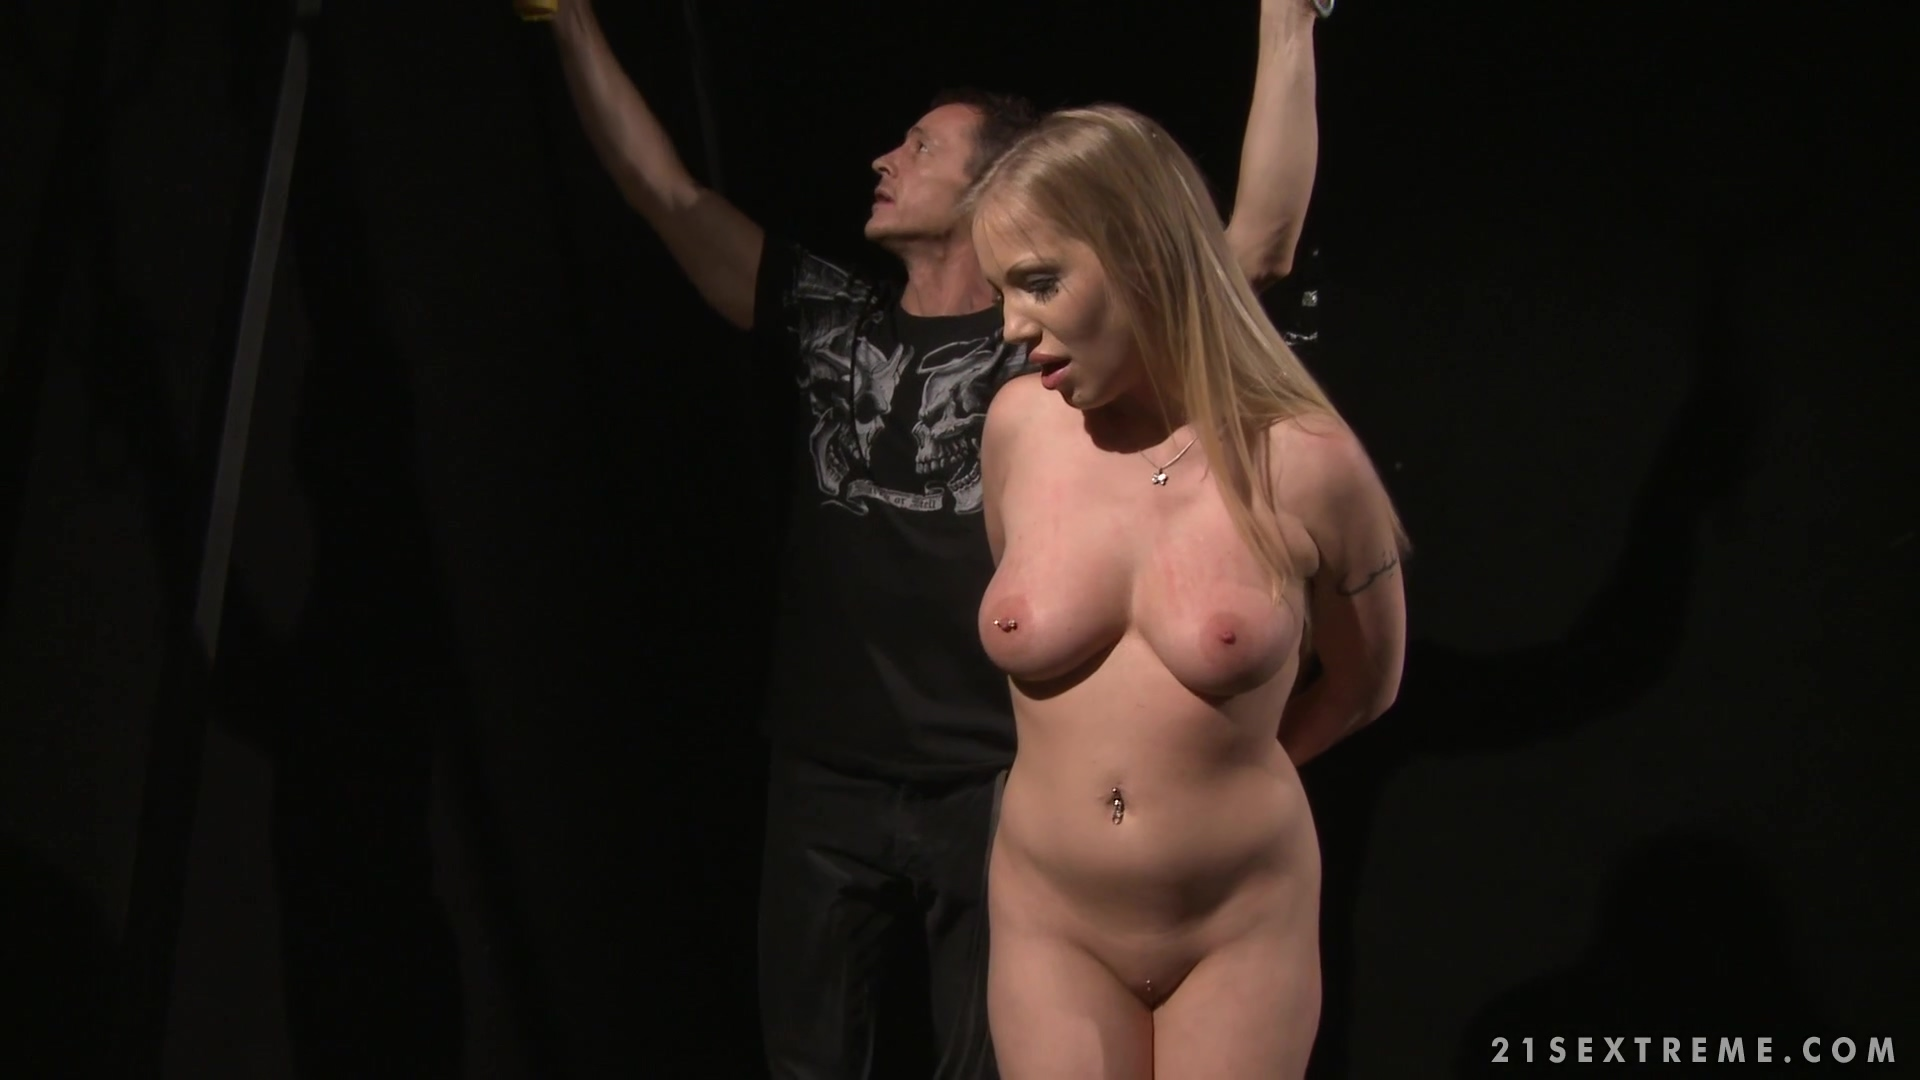 Kira Banks is simply sexy in BDSM scenes